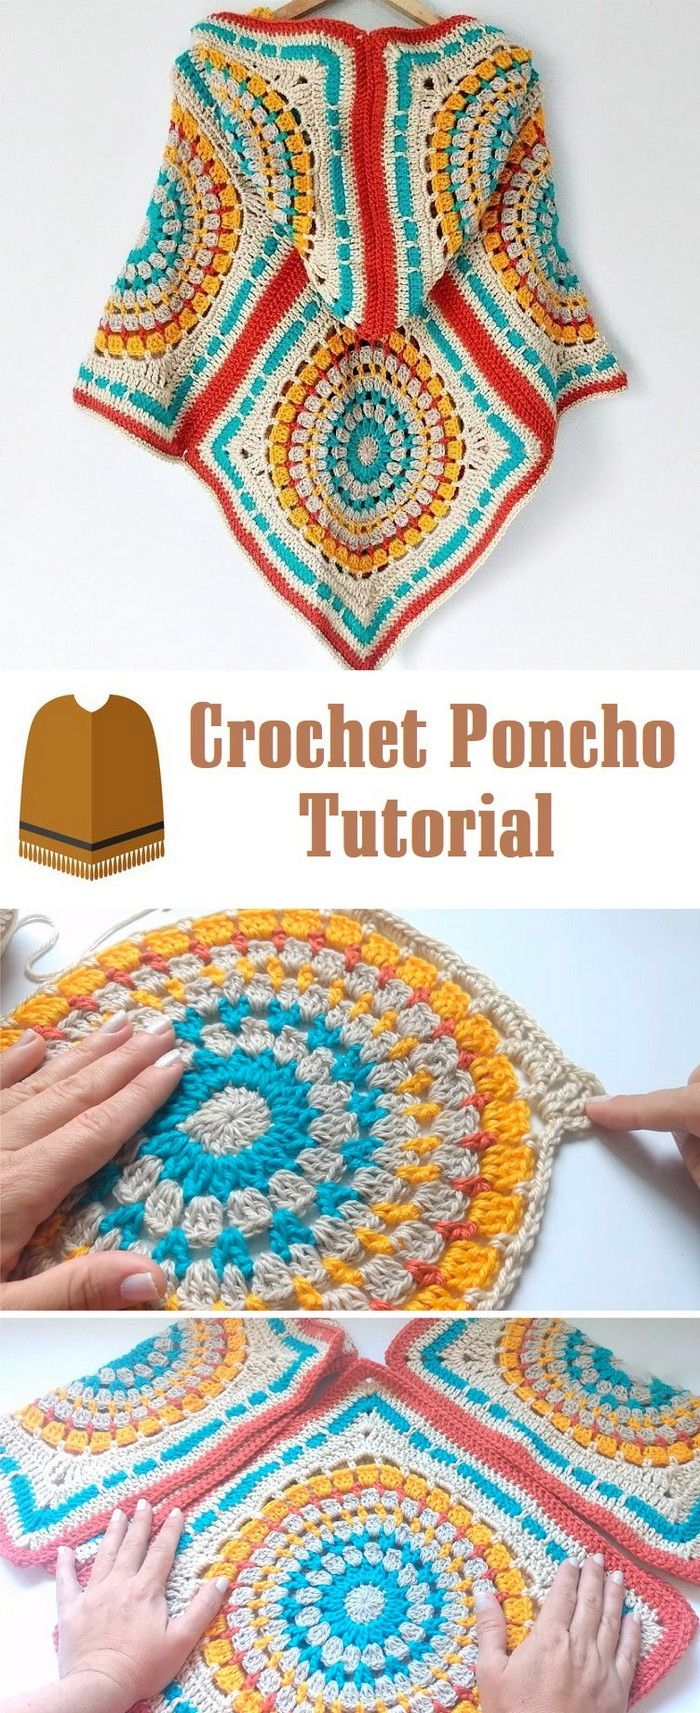 Easy DIY Crochet Patterns For Numbers Of Items